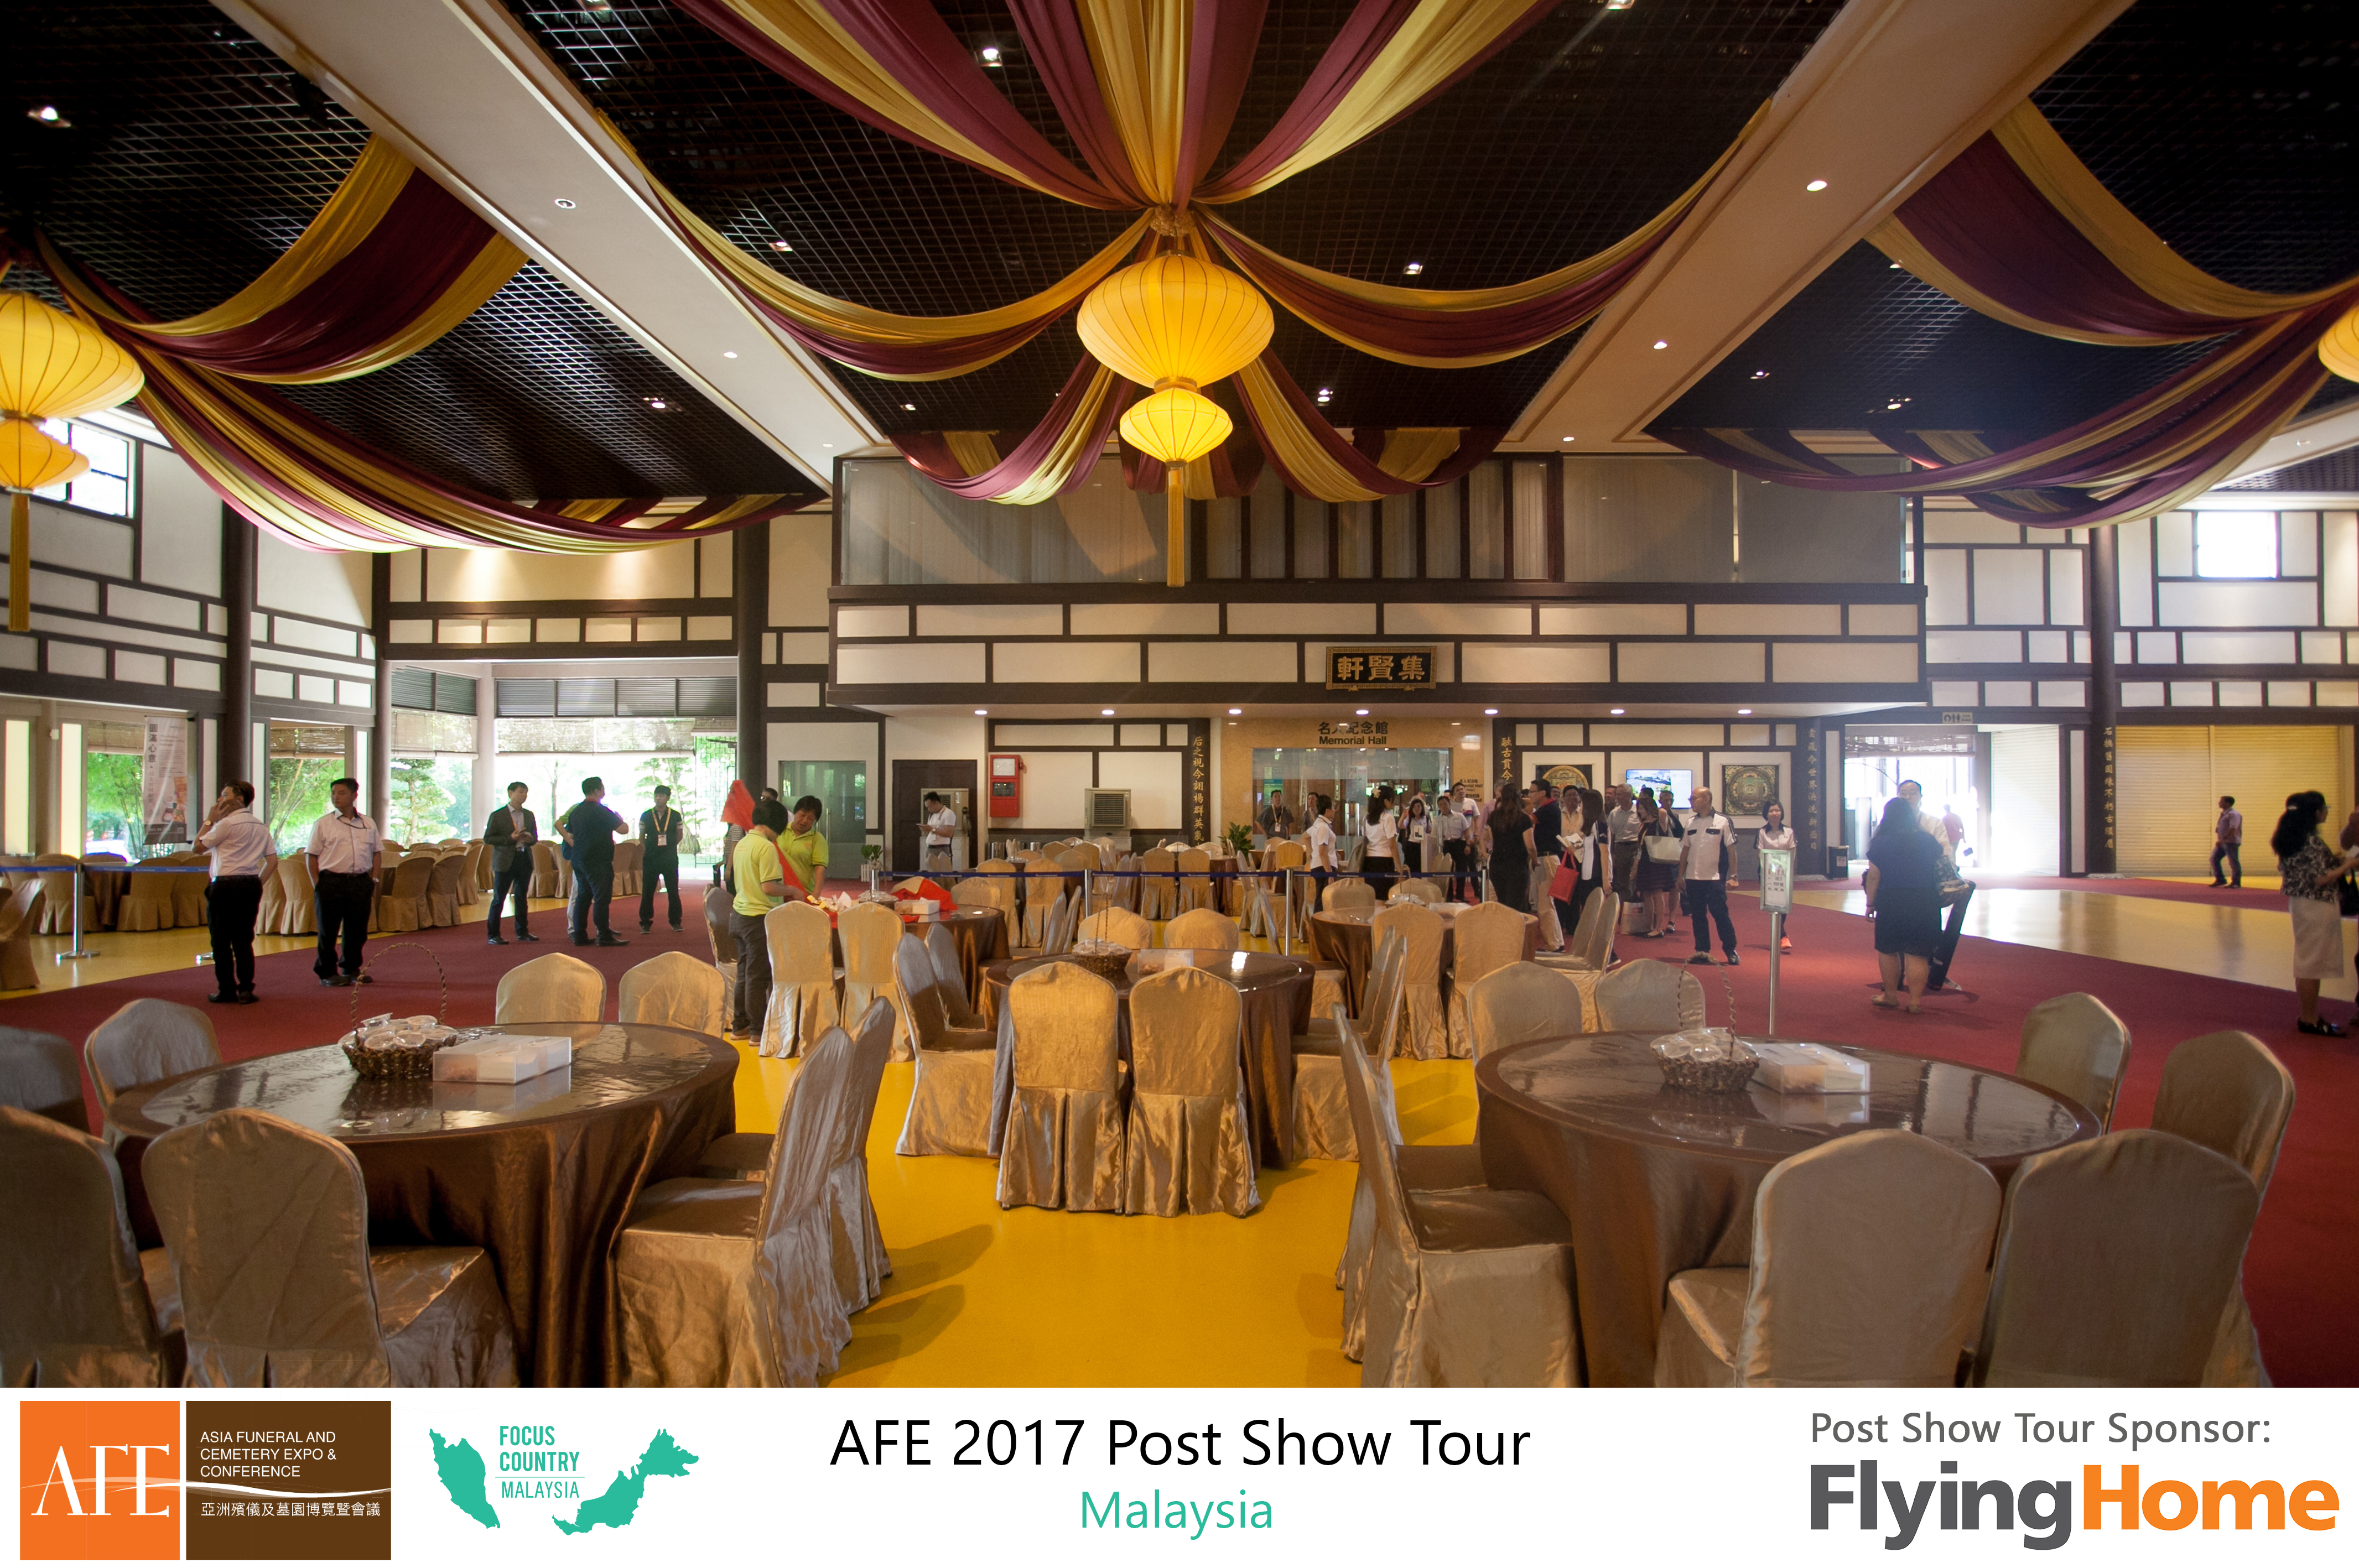 AFE Post Show Tour 2017 Day 2 - 46